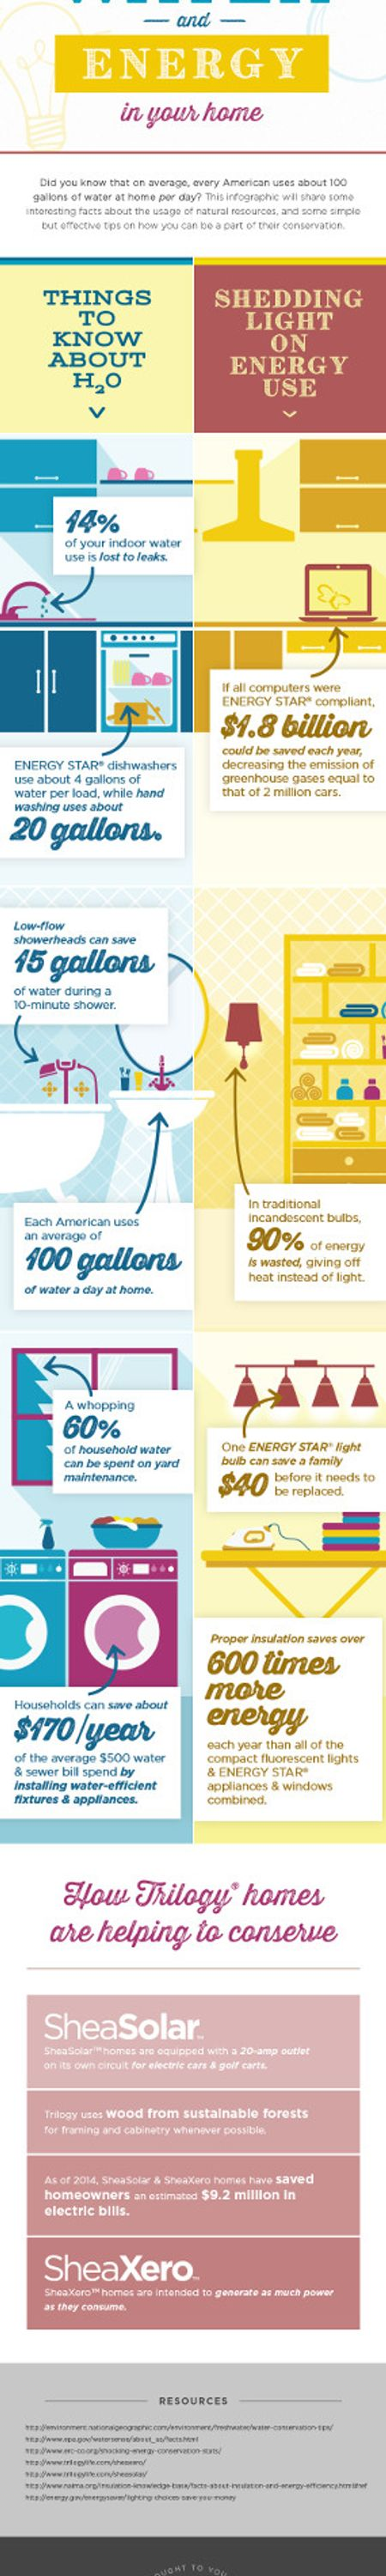 Blog_Ways_to_Conserve_Infographic.jpg